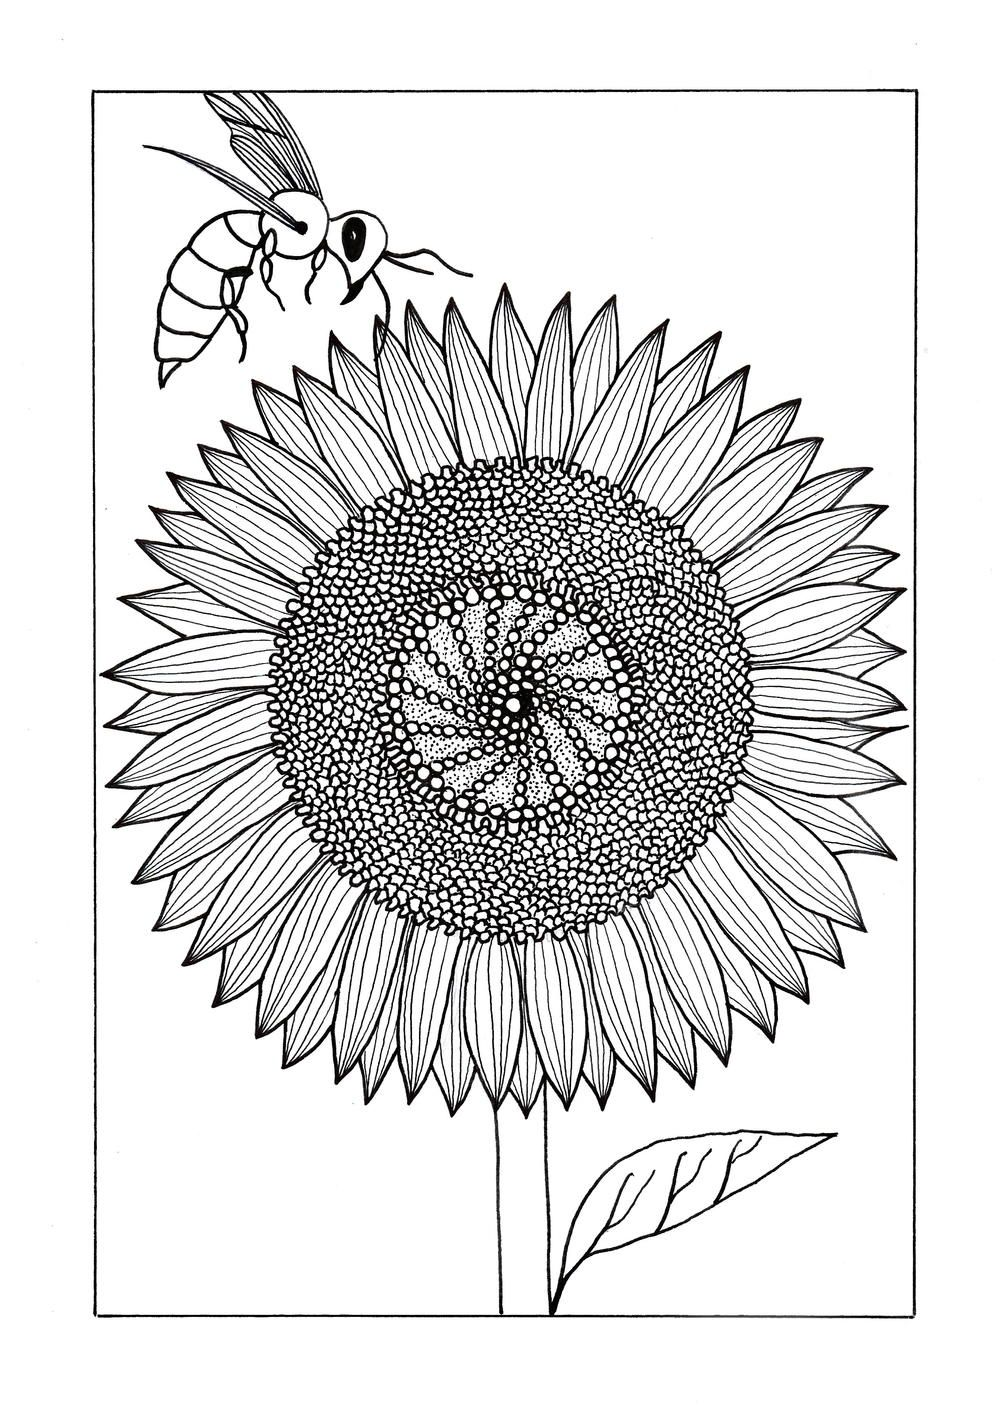 Vividly Intricate Sunflower Adult Coloring Page Mandala Coloring